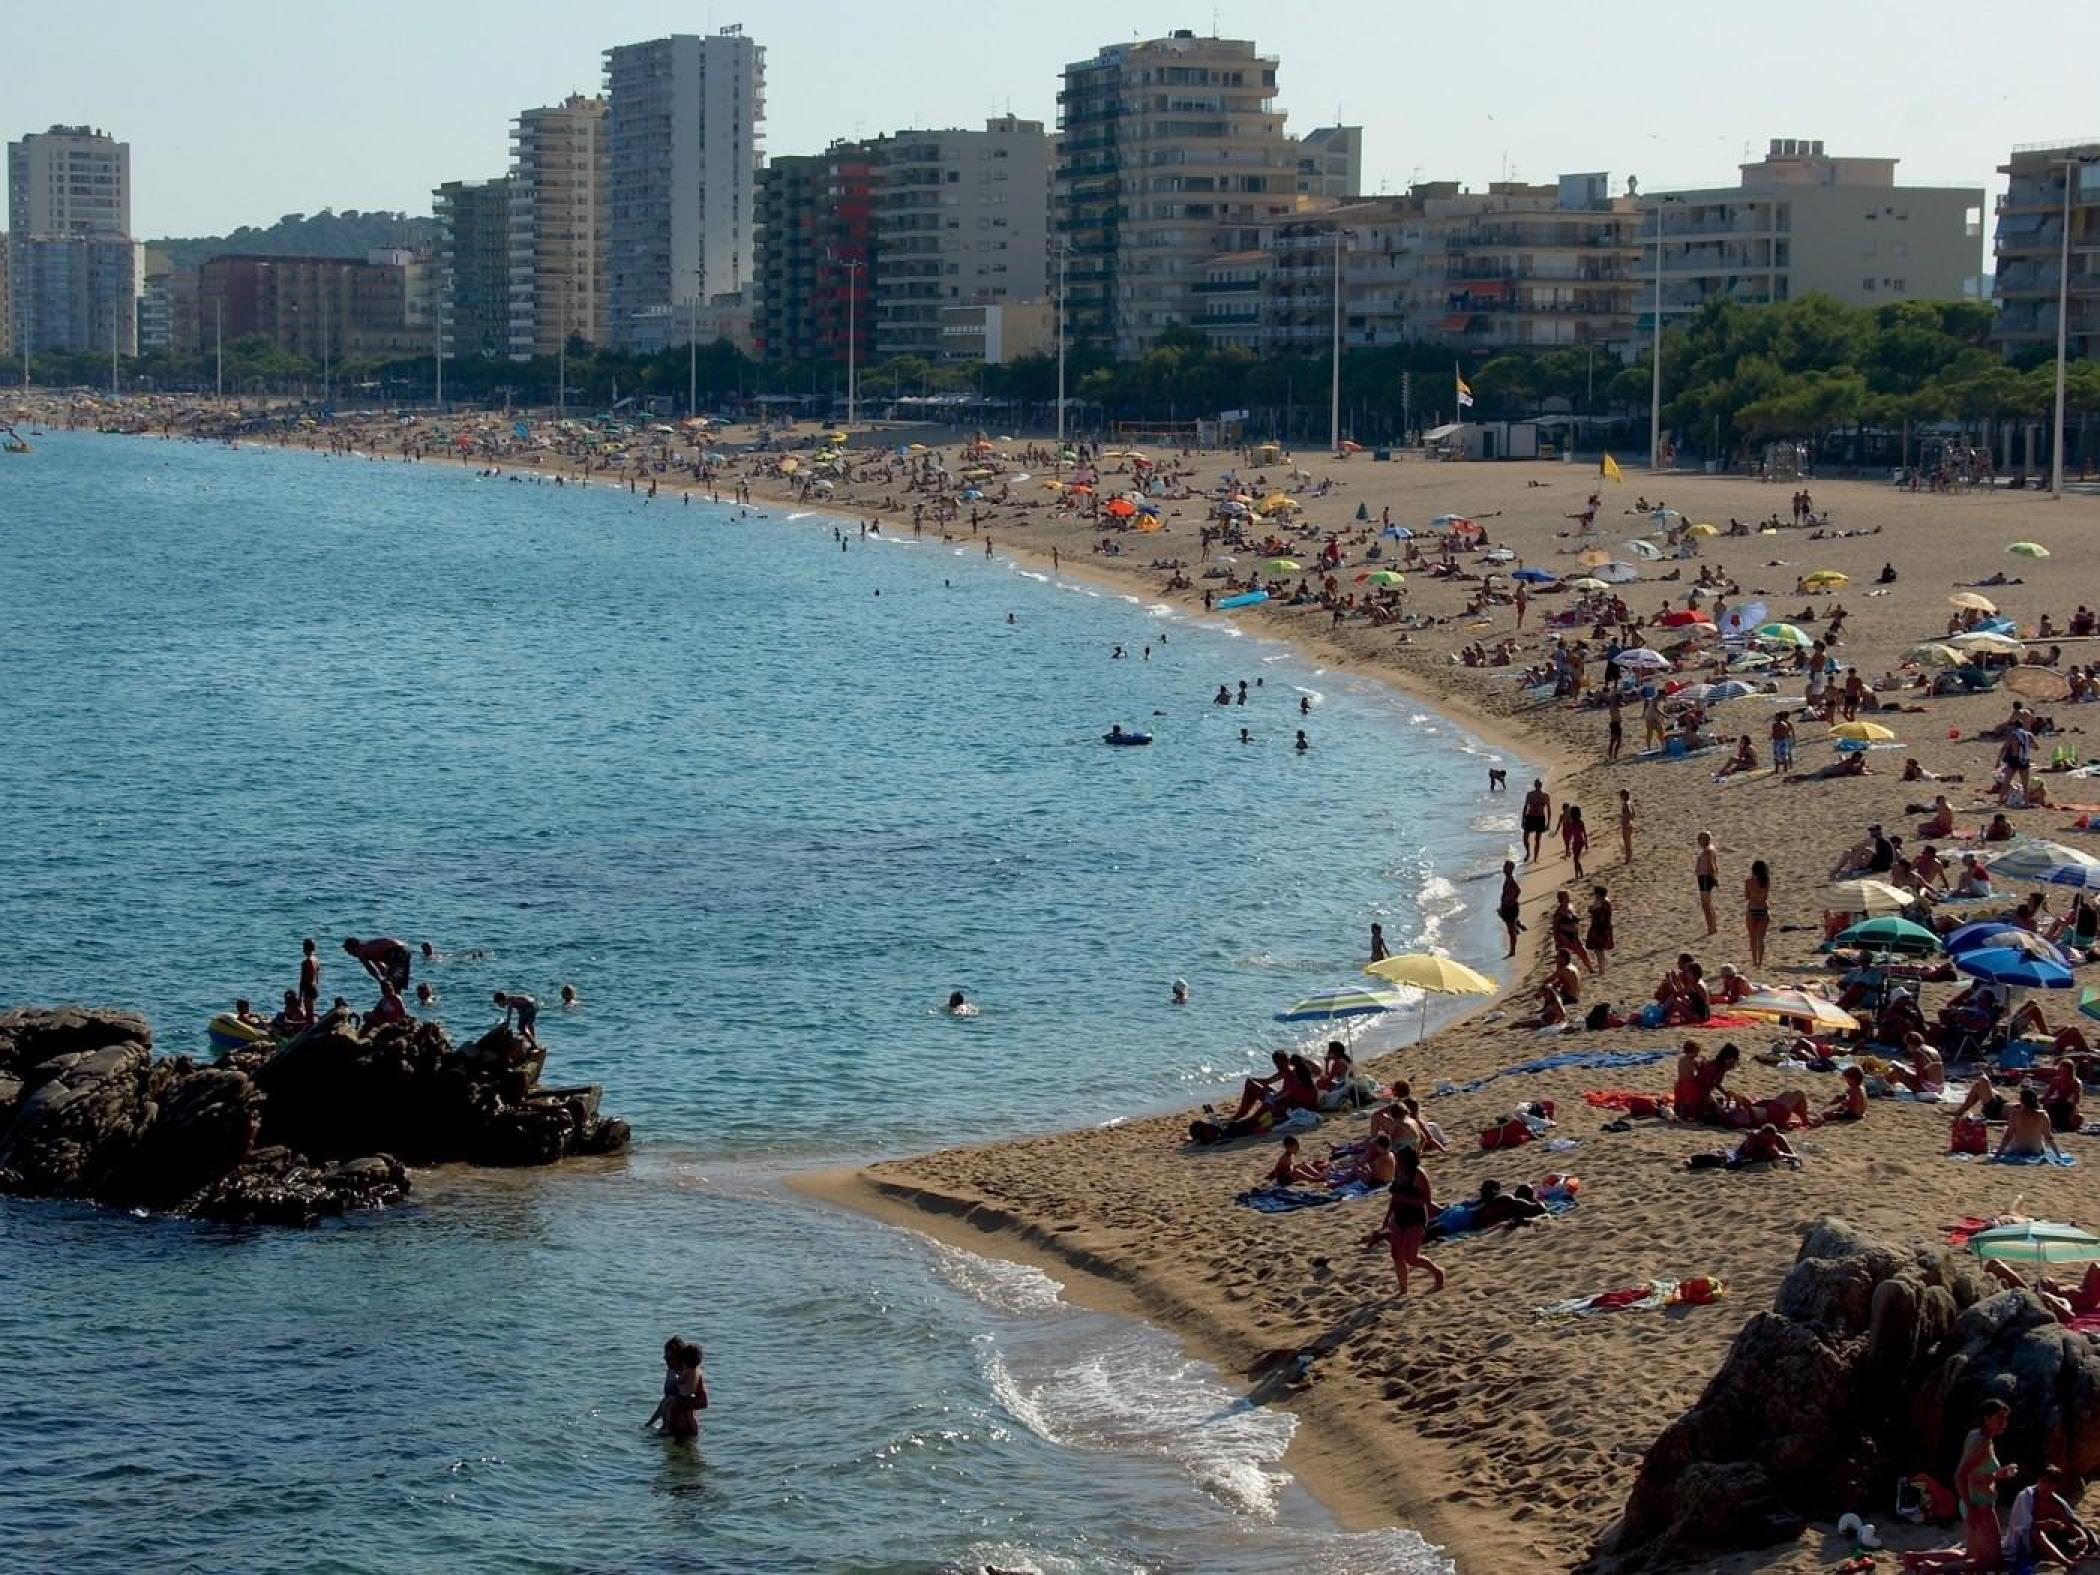 Rent Apartment in Platja d'Aro - Ground floor in front of the sea Ridaura BX4 - 30